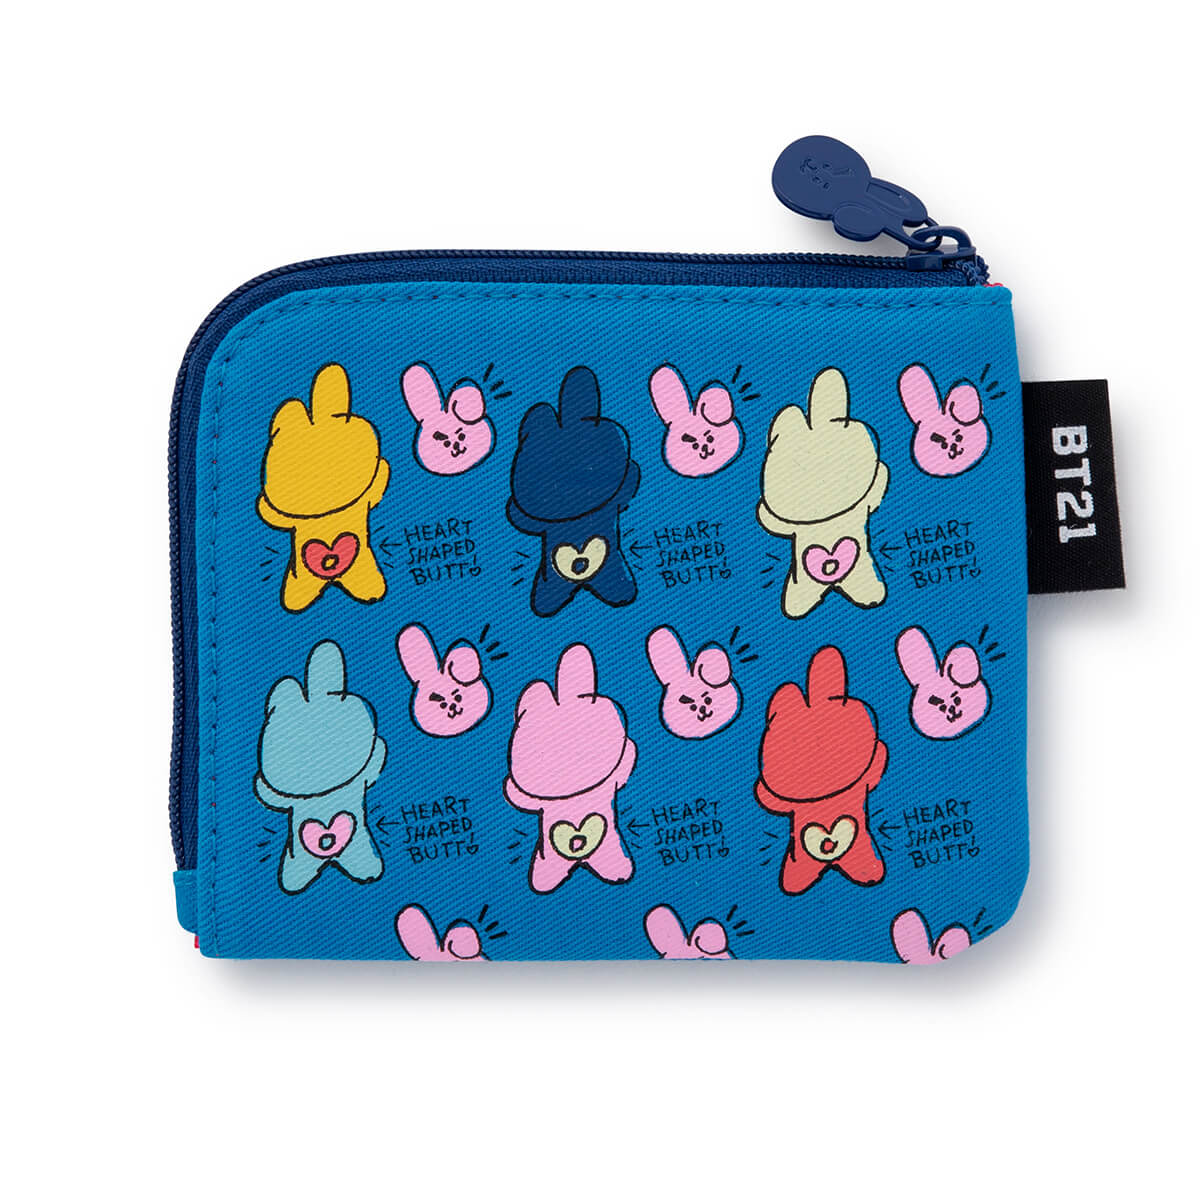 BT21 COOKY Zippered Credit Card Wallet Pouch